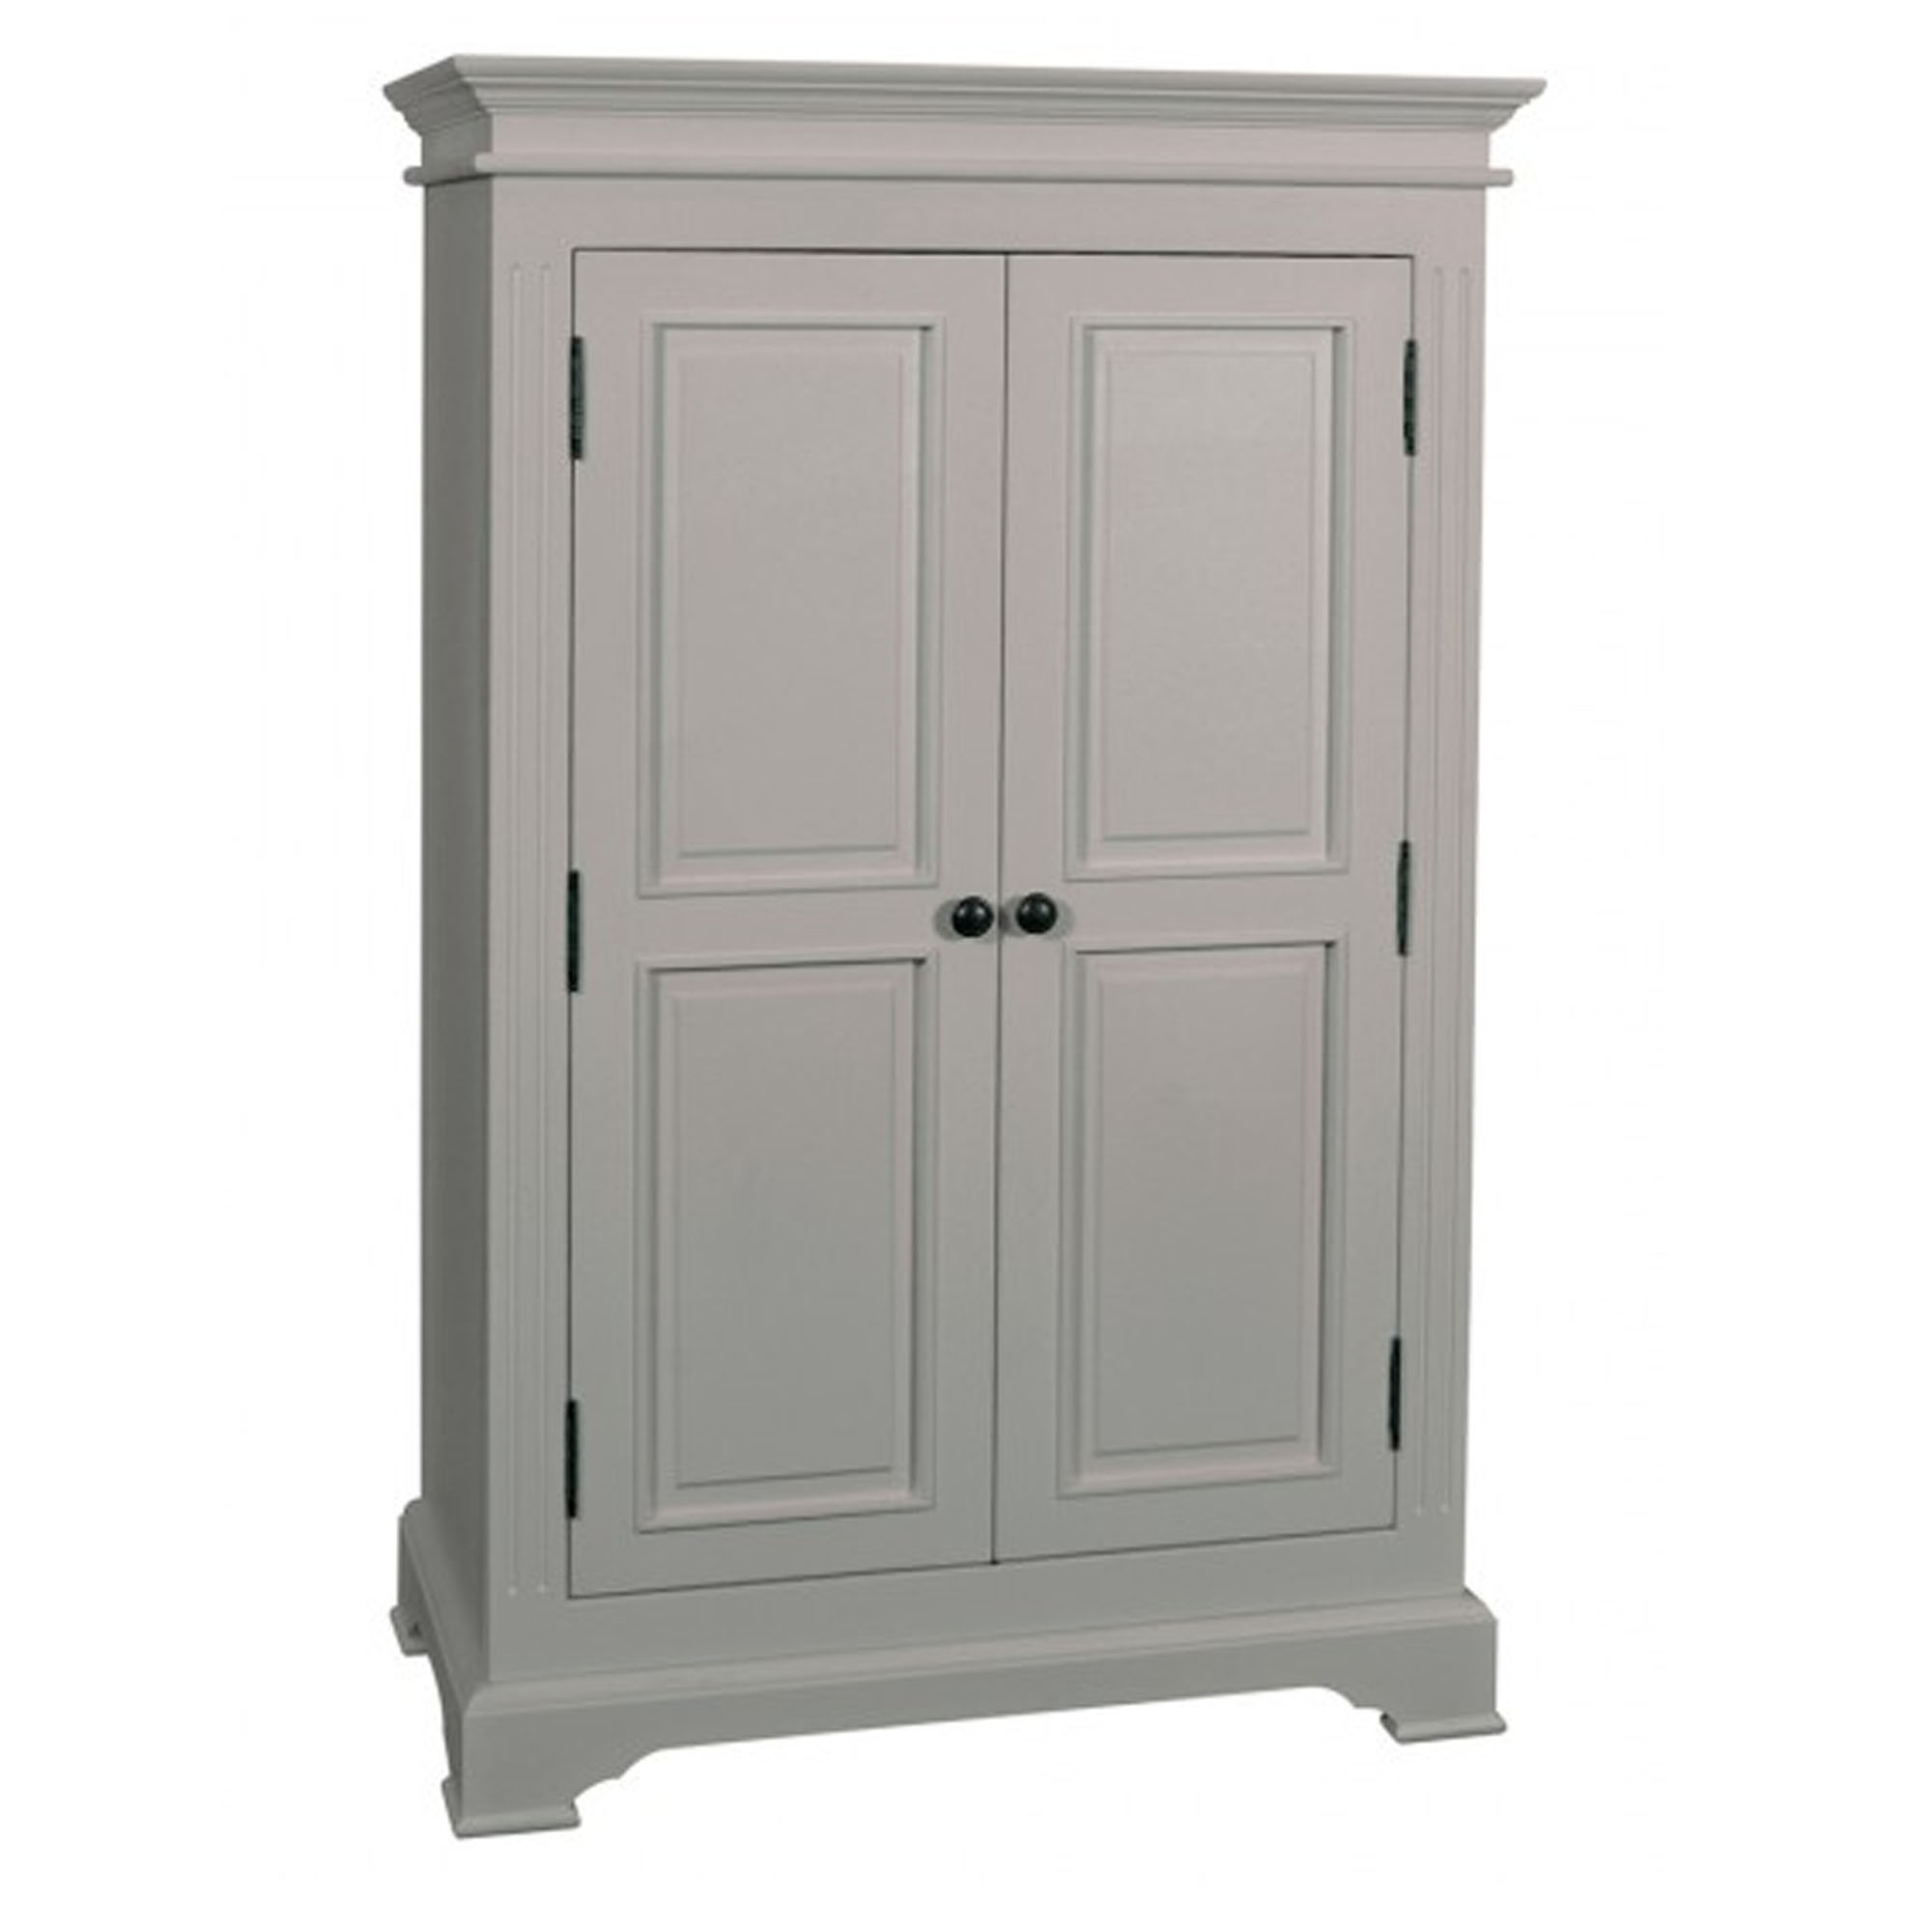 cottage small shabby chic wardrobe HXOVDKZ